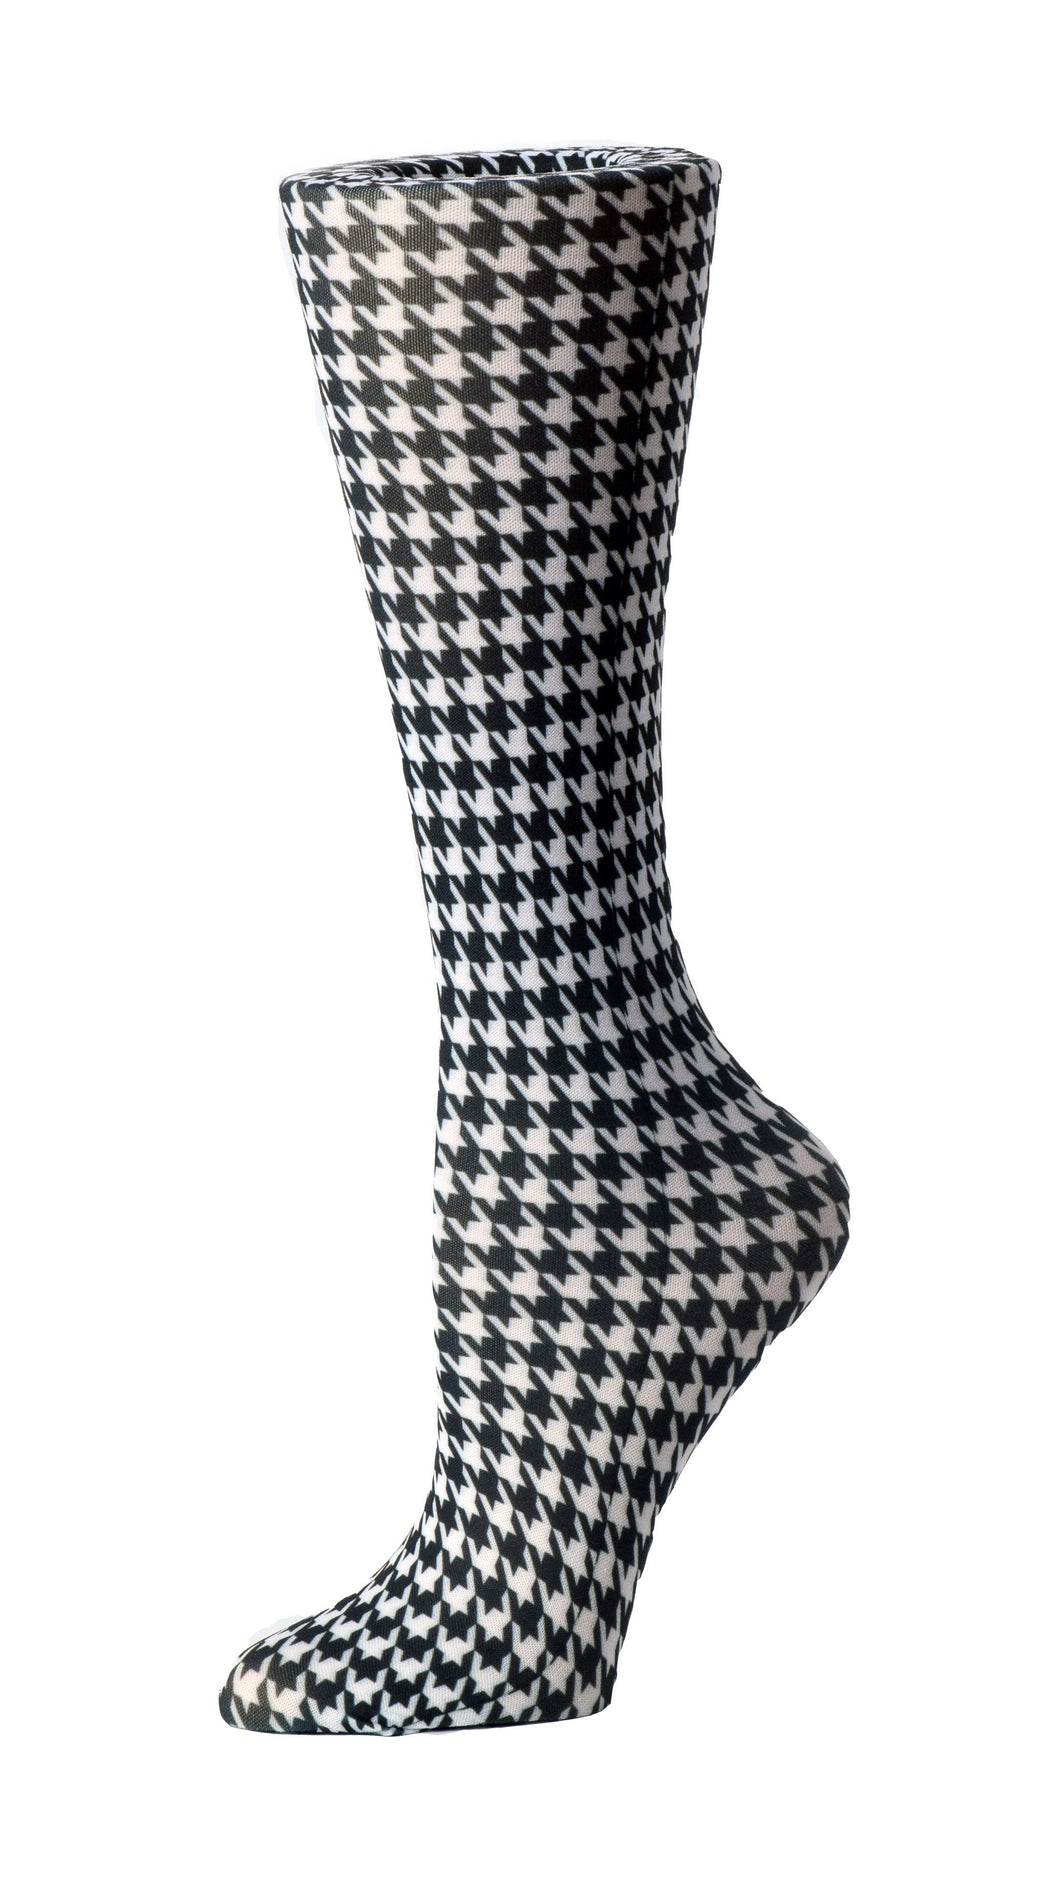 Cutieful Therapeutic Compression Socks - Houndstooth